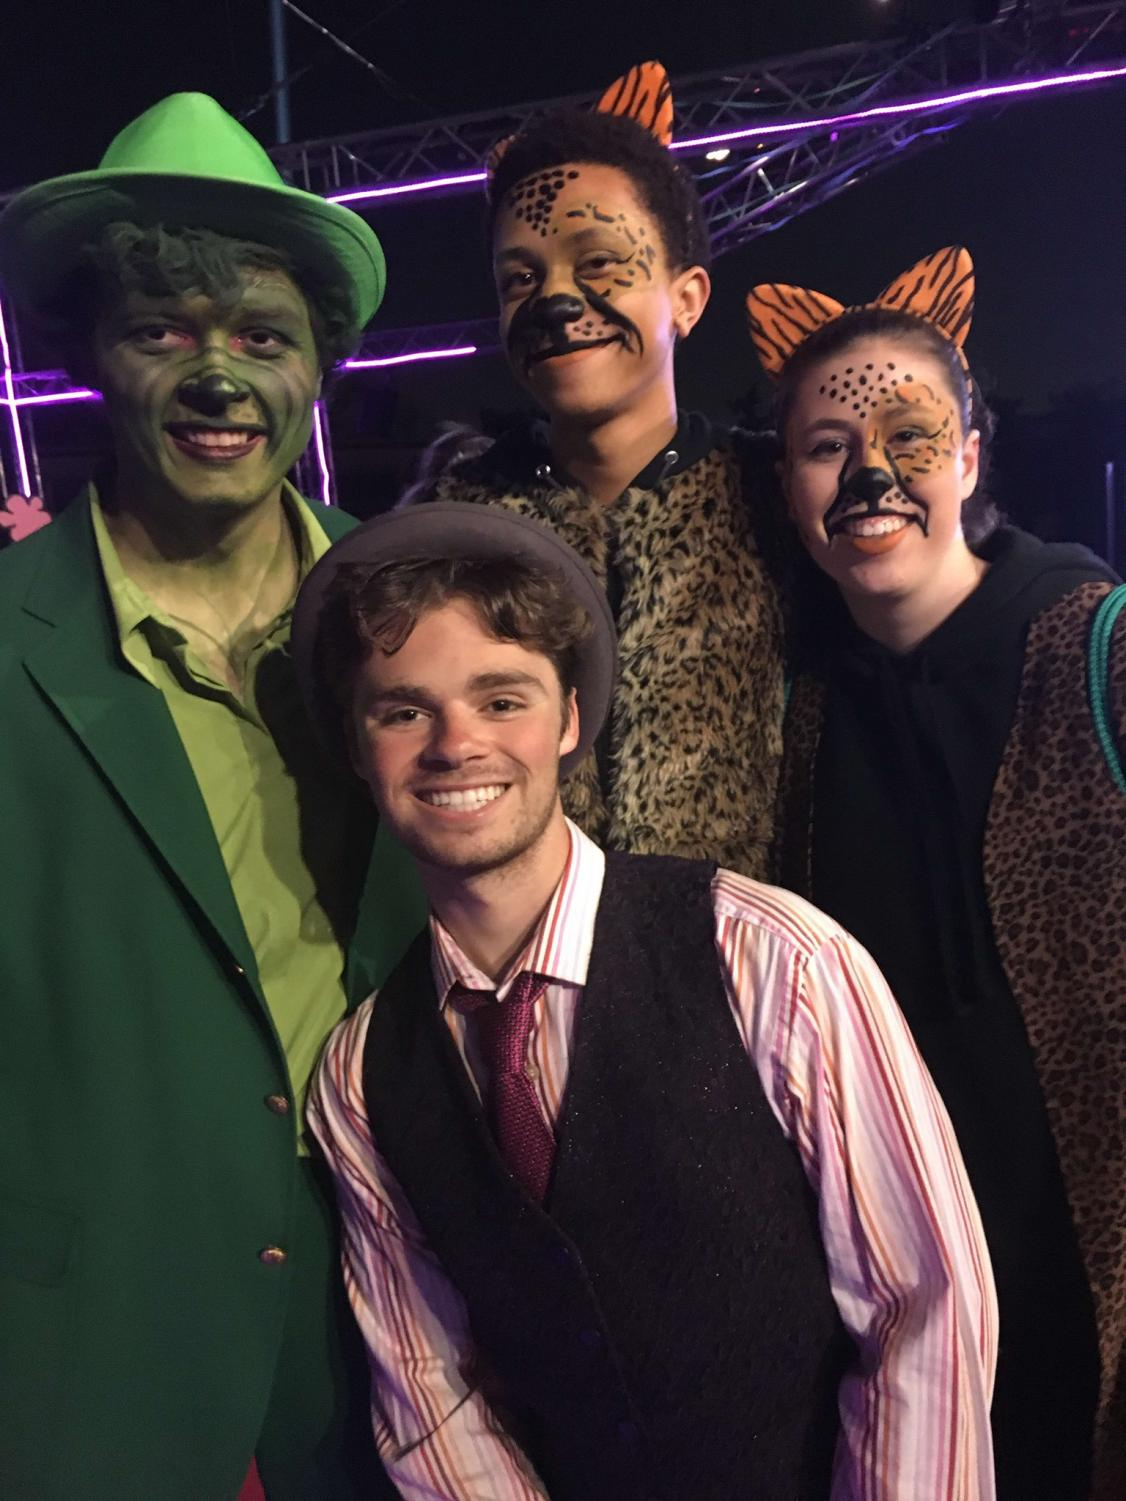 (Left to Right) Seniors Aiden Mulholland, Jagari Jennings, Jack Chorbagian and Michaela Maguin pose after a performance.